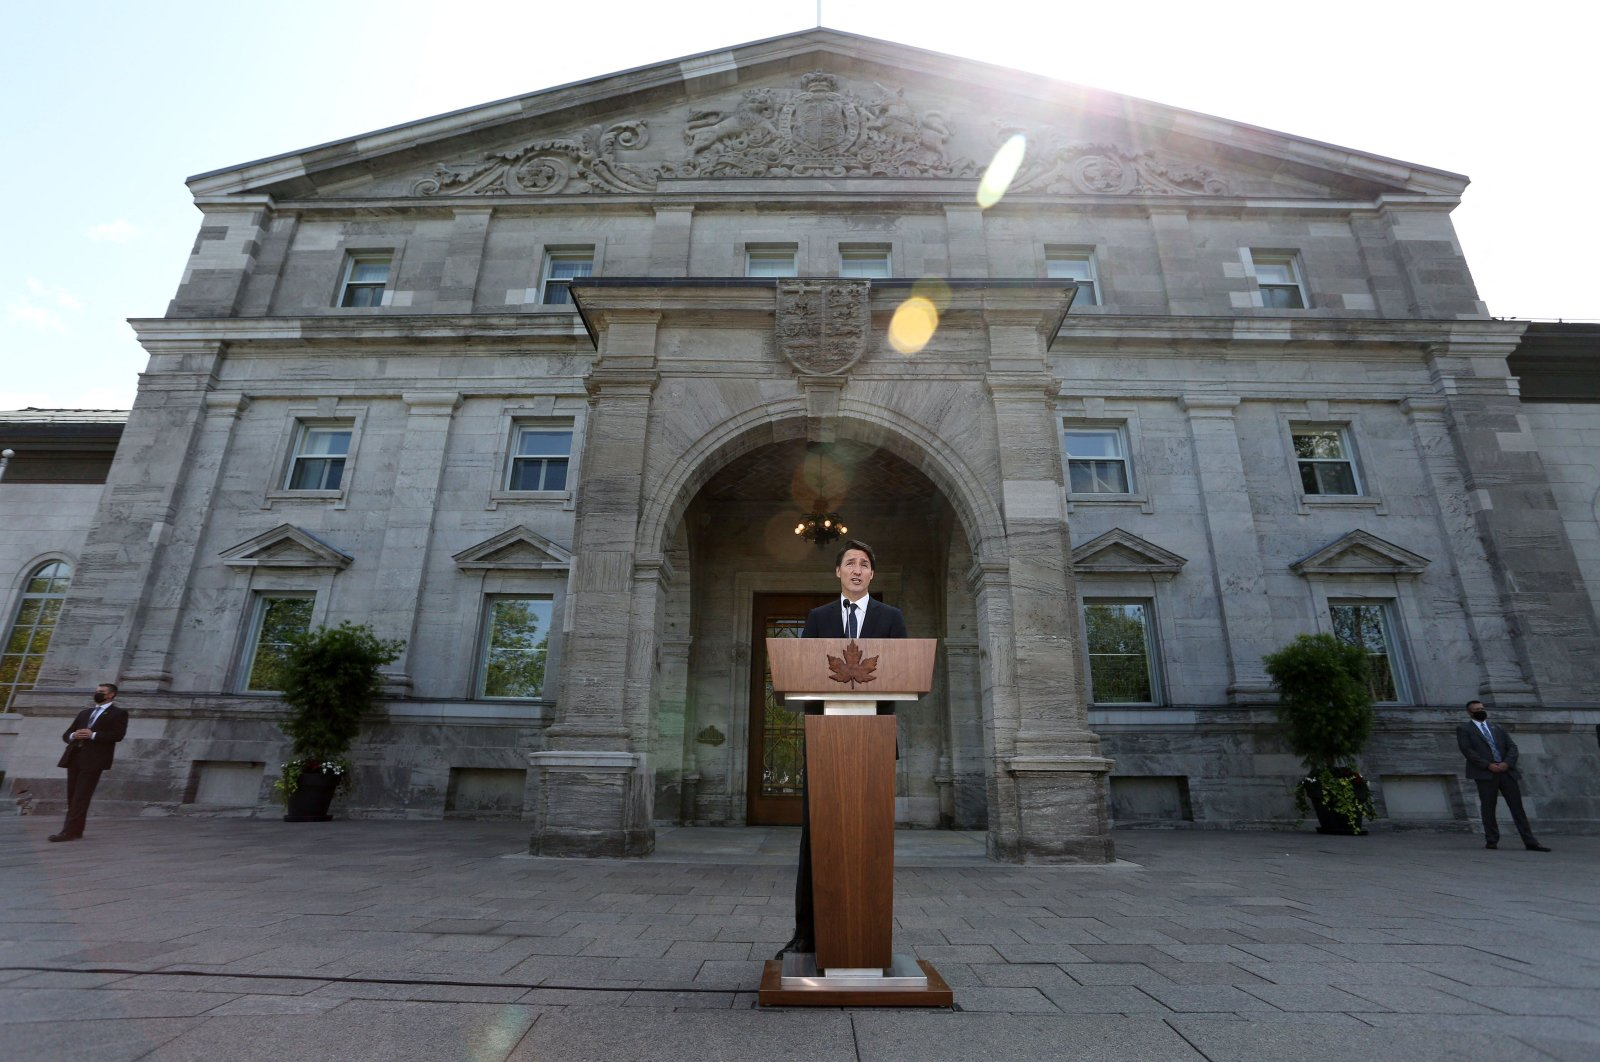 Canada's Prime Minister Justin Trudeau speaks during a news conference at Rideau Hall after asking Governor General Mary Simon to dissolve Parliament, Aug. 15, 2021, in Ottawa, Canada. (AFP Photo)